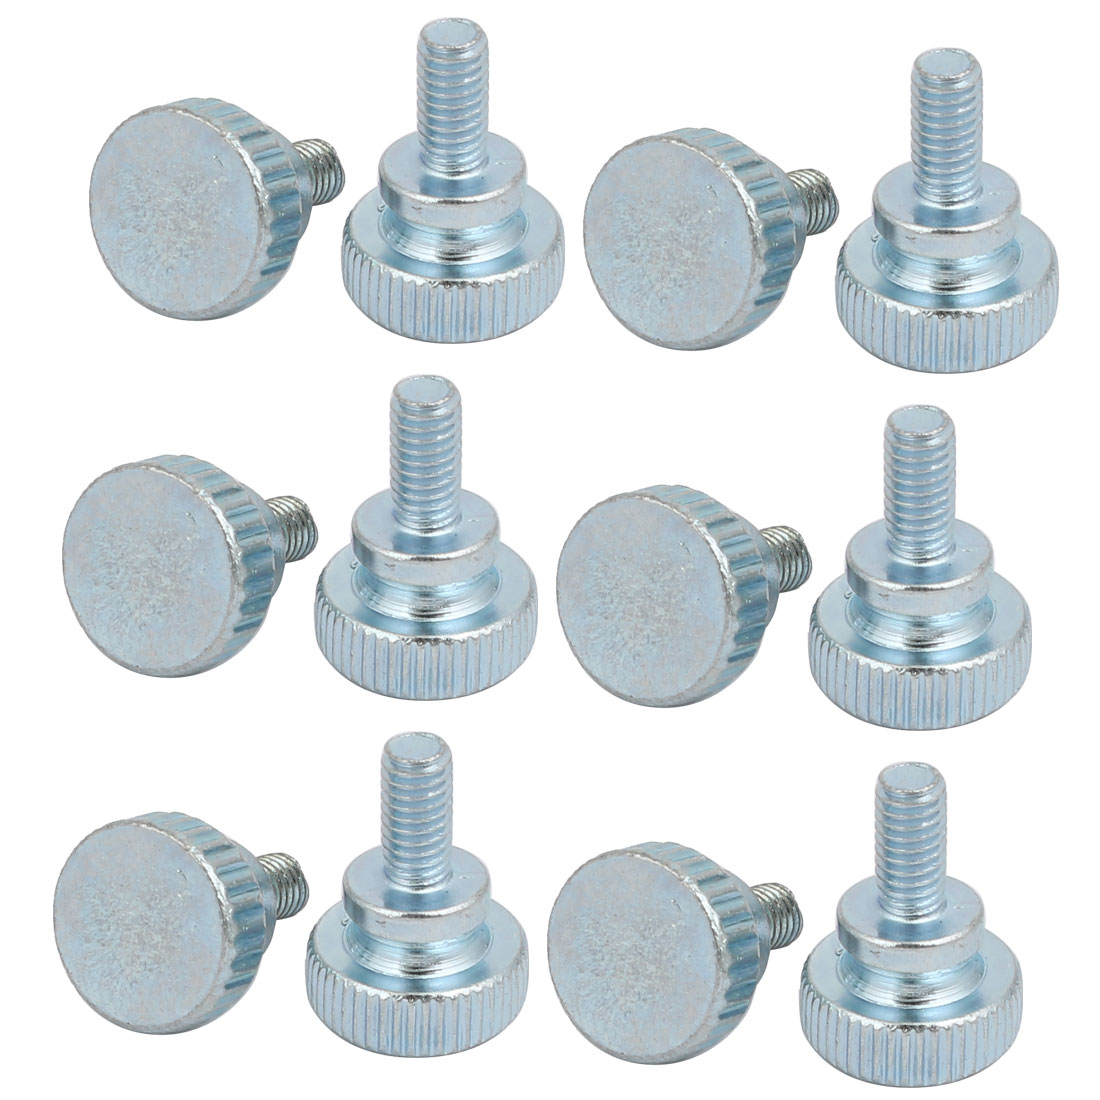 Unique Bargains M4x8mm Carbon Steel Flat Knurled Head Fully Threaded Thumb Screw Bolt 12pcs - image 3 of 3